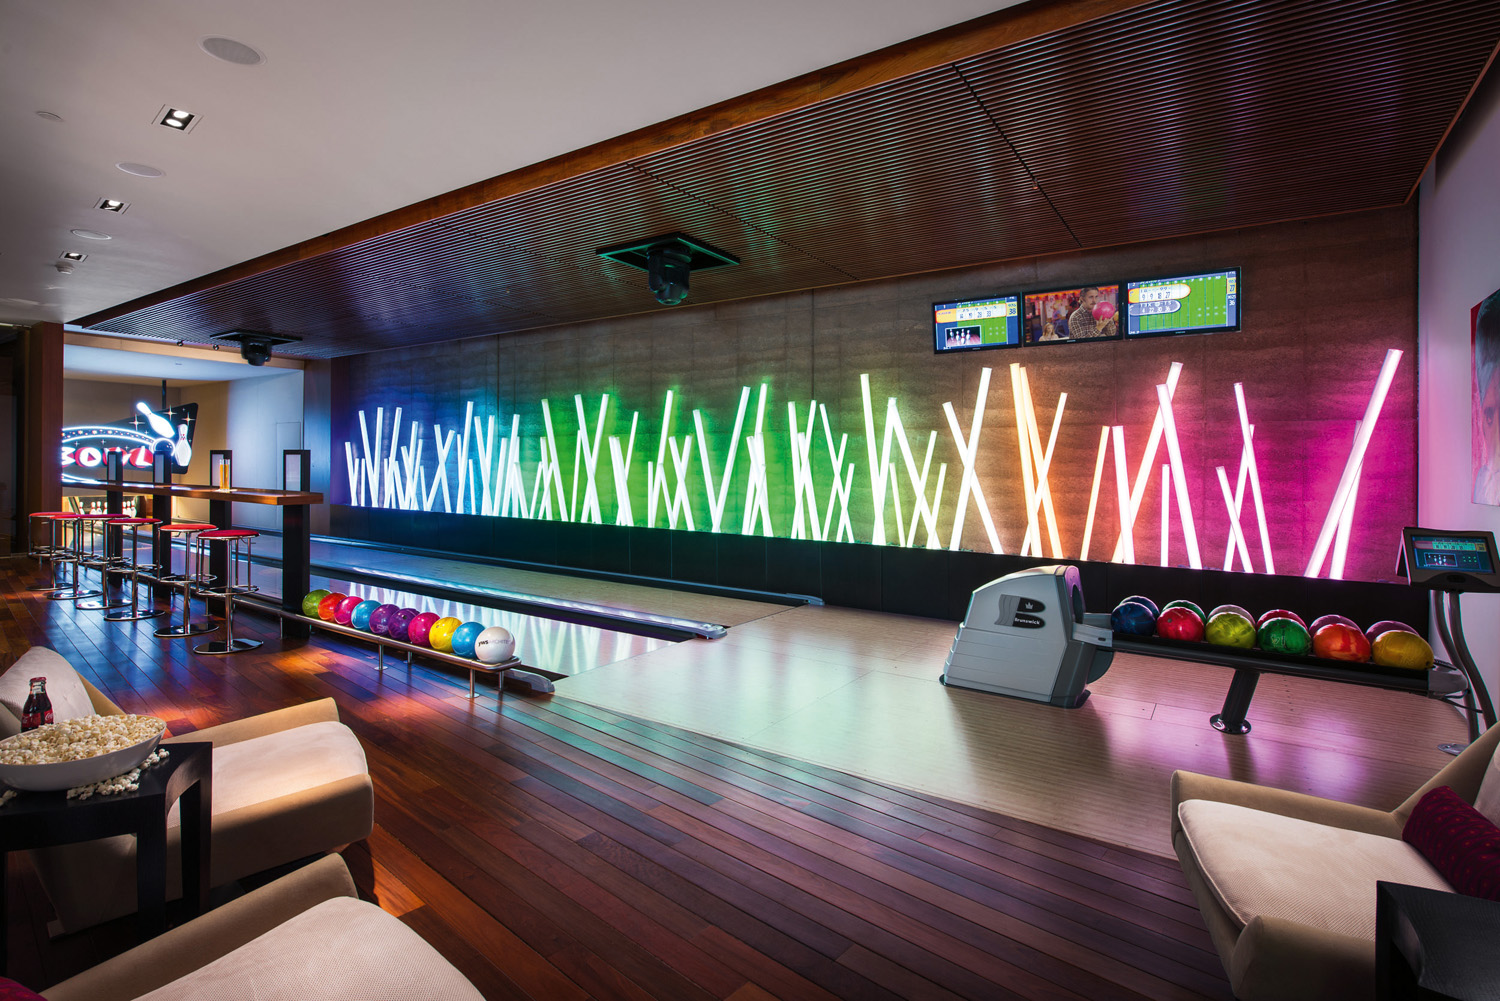 A bowling alley on the play level is decked out with the latest technology